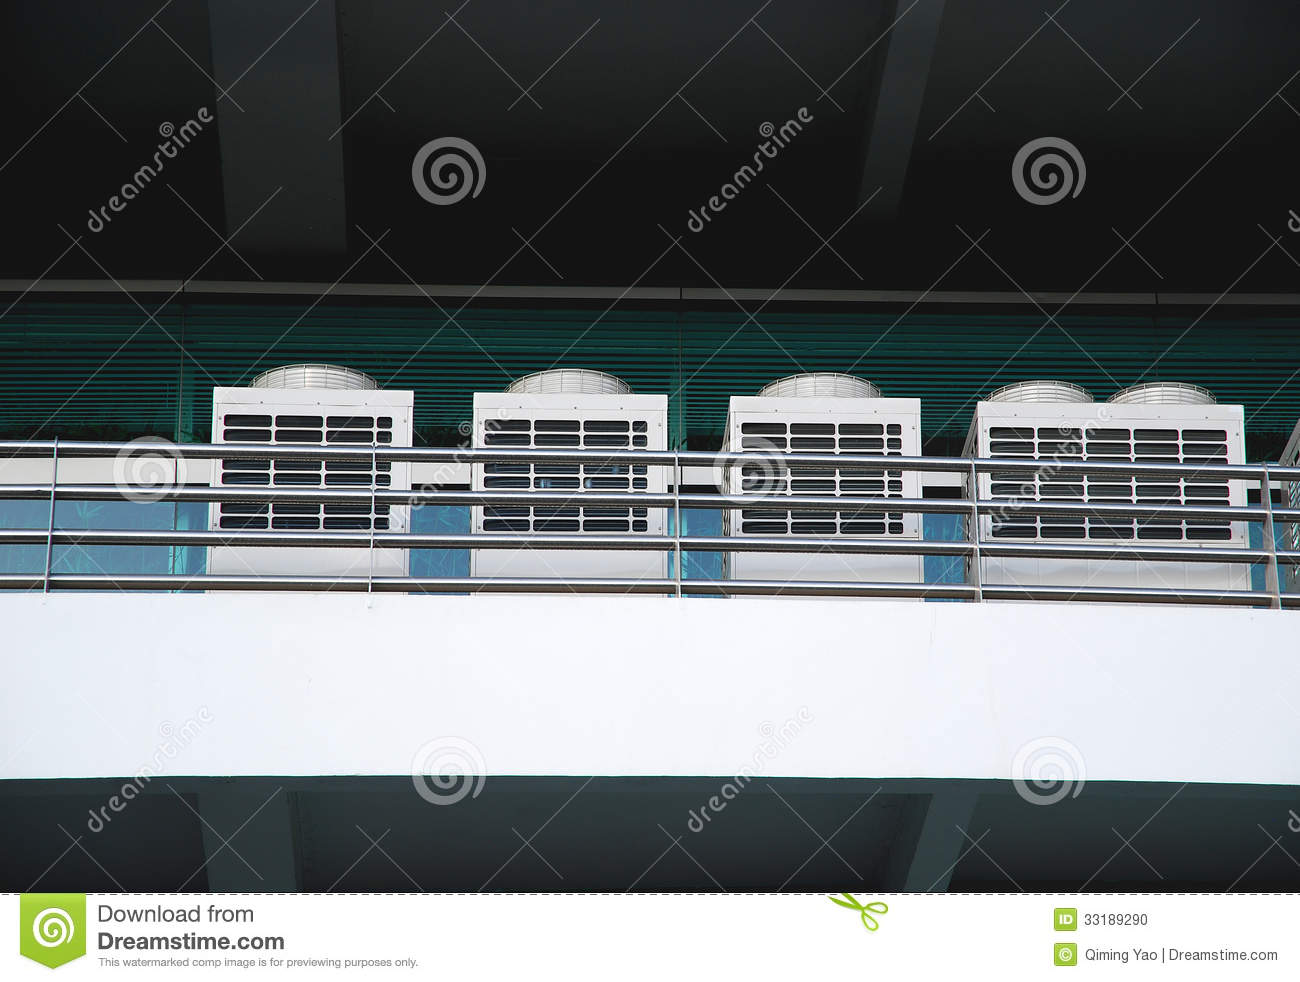 Meeting Equipment Air Conditioning Equipment Stock Photo Image  #82A328